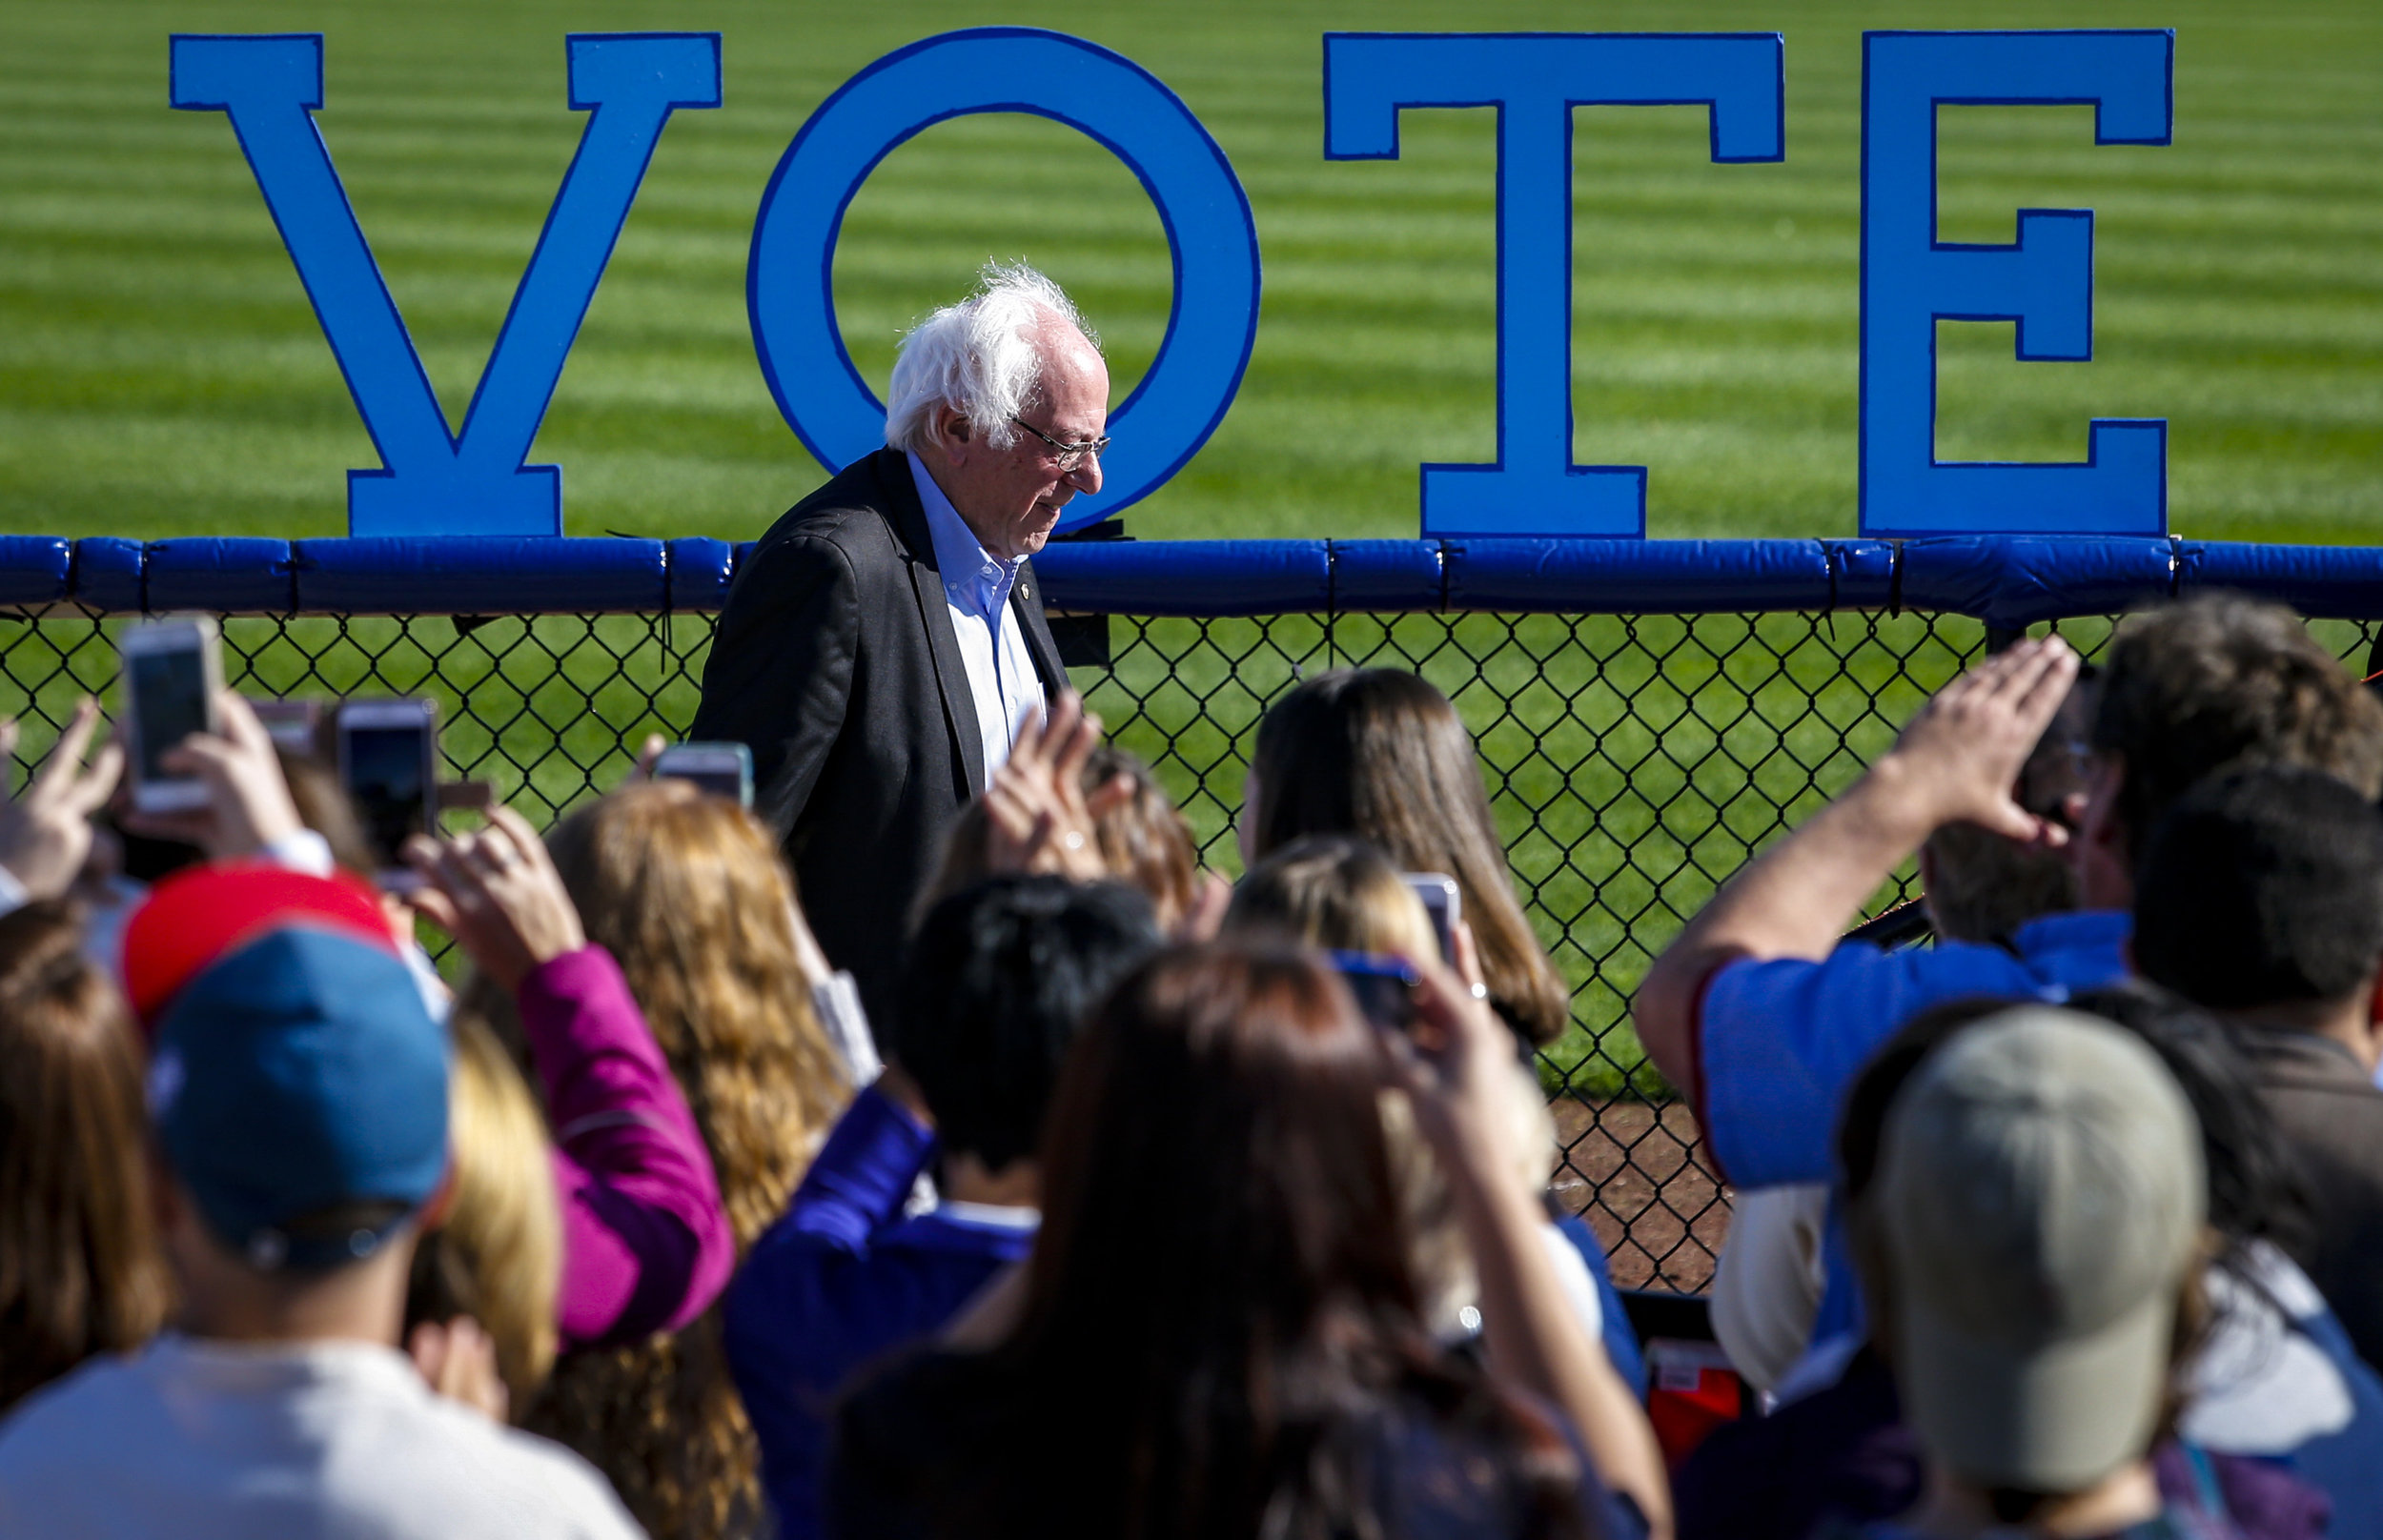 Sen. Bernie Sanders walks up to take the stage outside Modern Woodmen Park in Davenport, Friday, November 4, 2016. The Hillary Clinton campaign held the Davenport Stronger Together Rally with Senator Bernie Sanders to encourage Iowans to vote early and support Clinton.